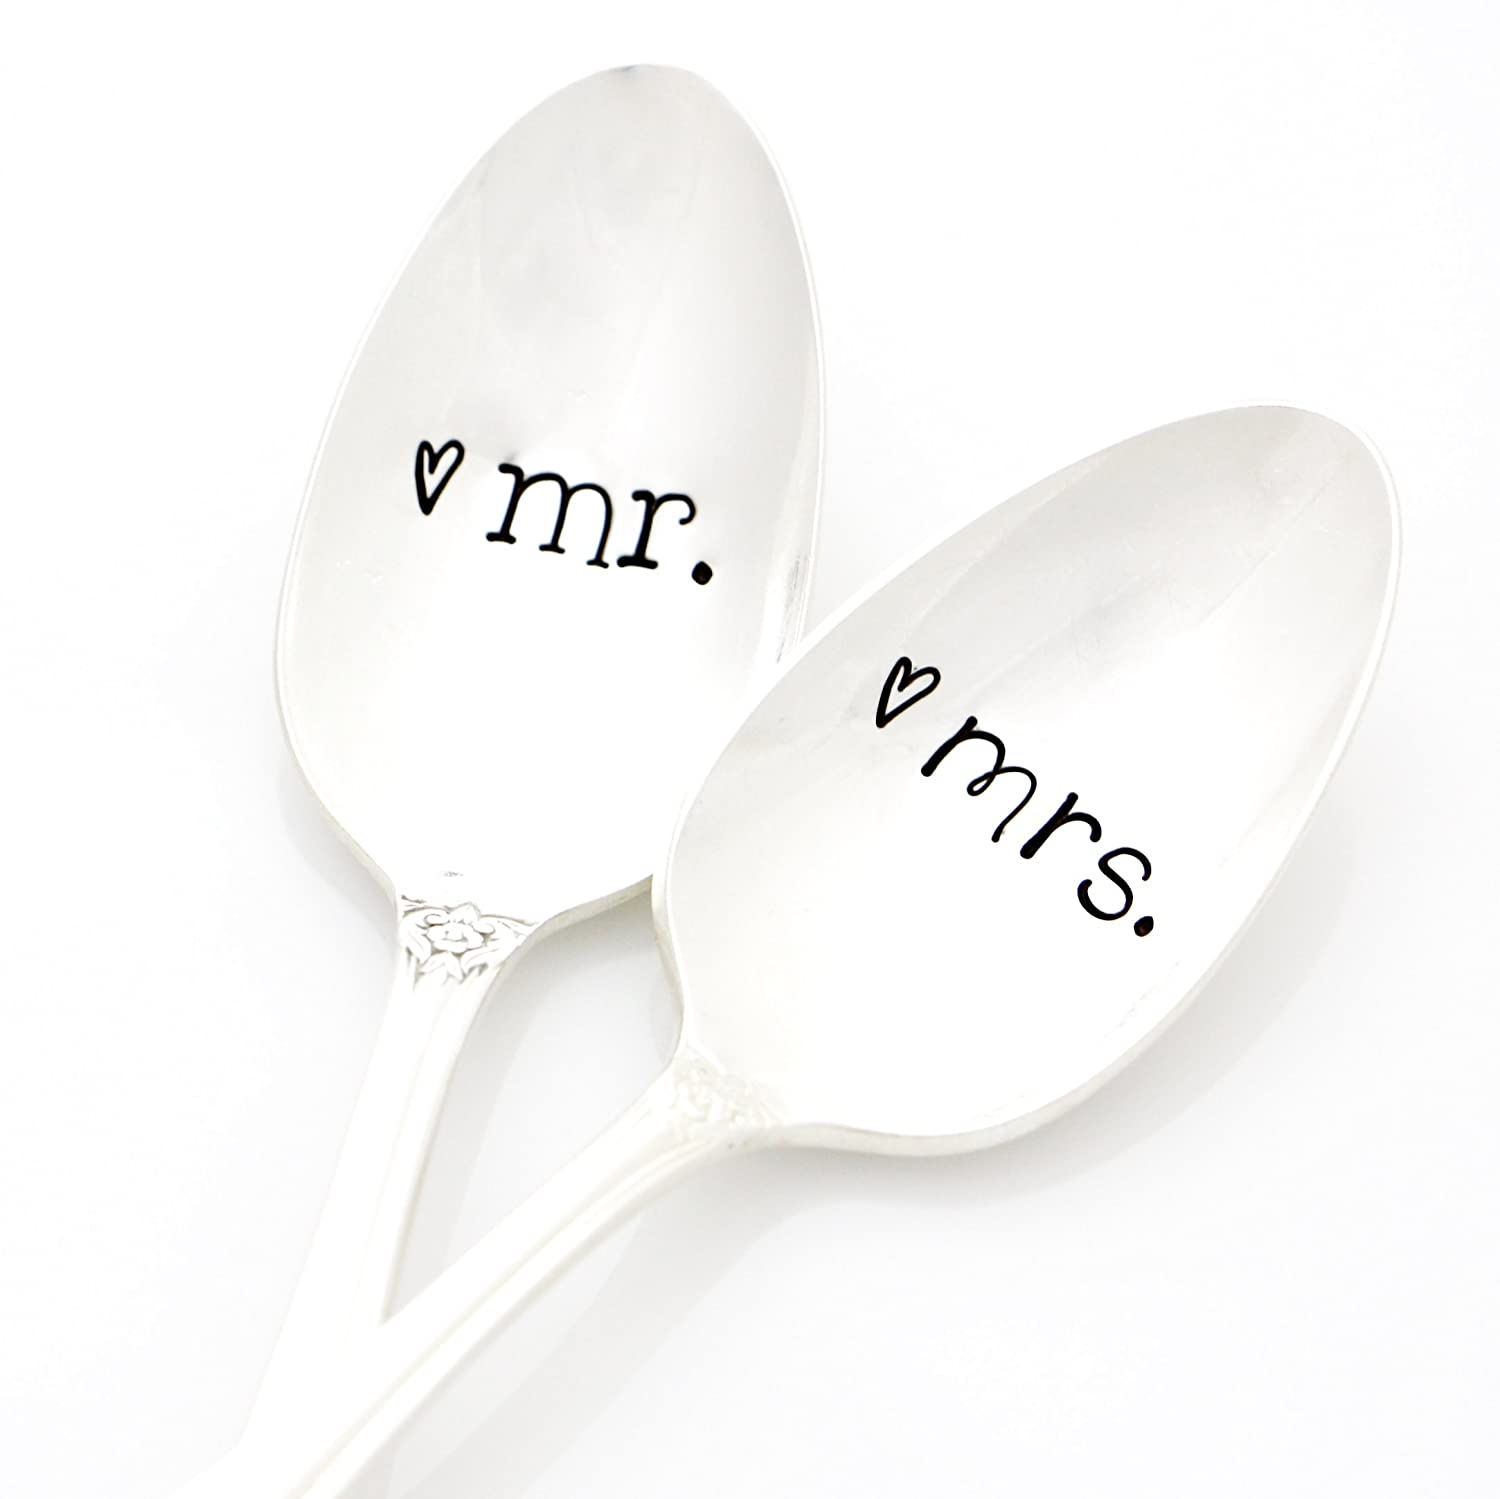 Mr. and Mrs. Wedding Spoons in 'His and Her' Fonts. Hand Stamped Silverware for Couples Gift Idea. Part of the Martha Stewart American Made Market.